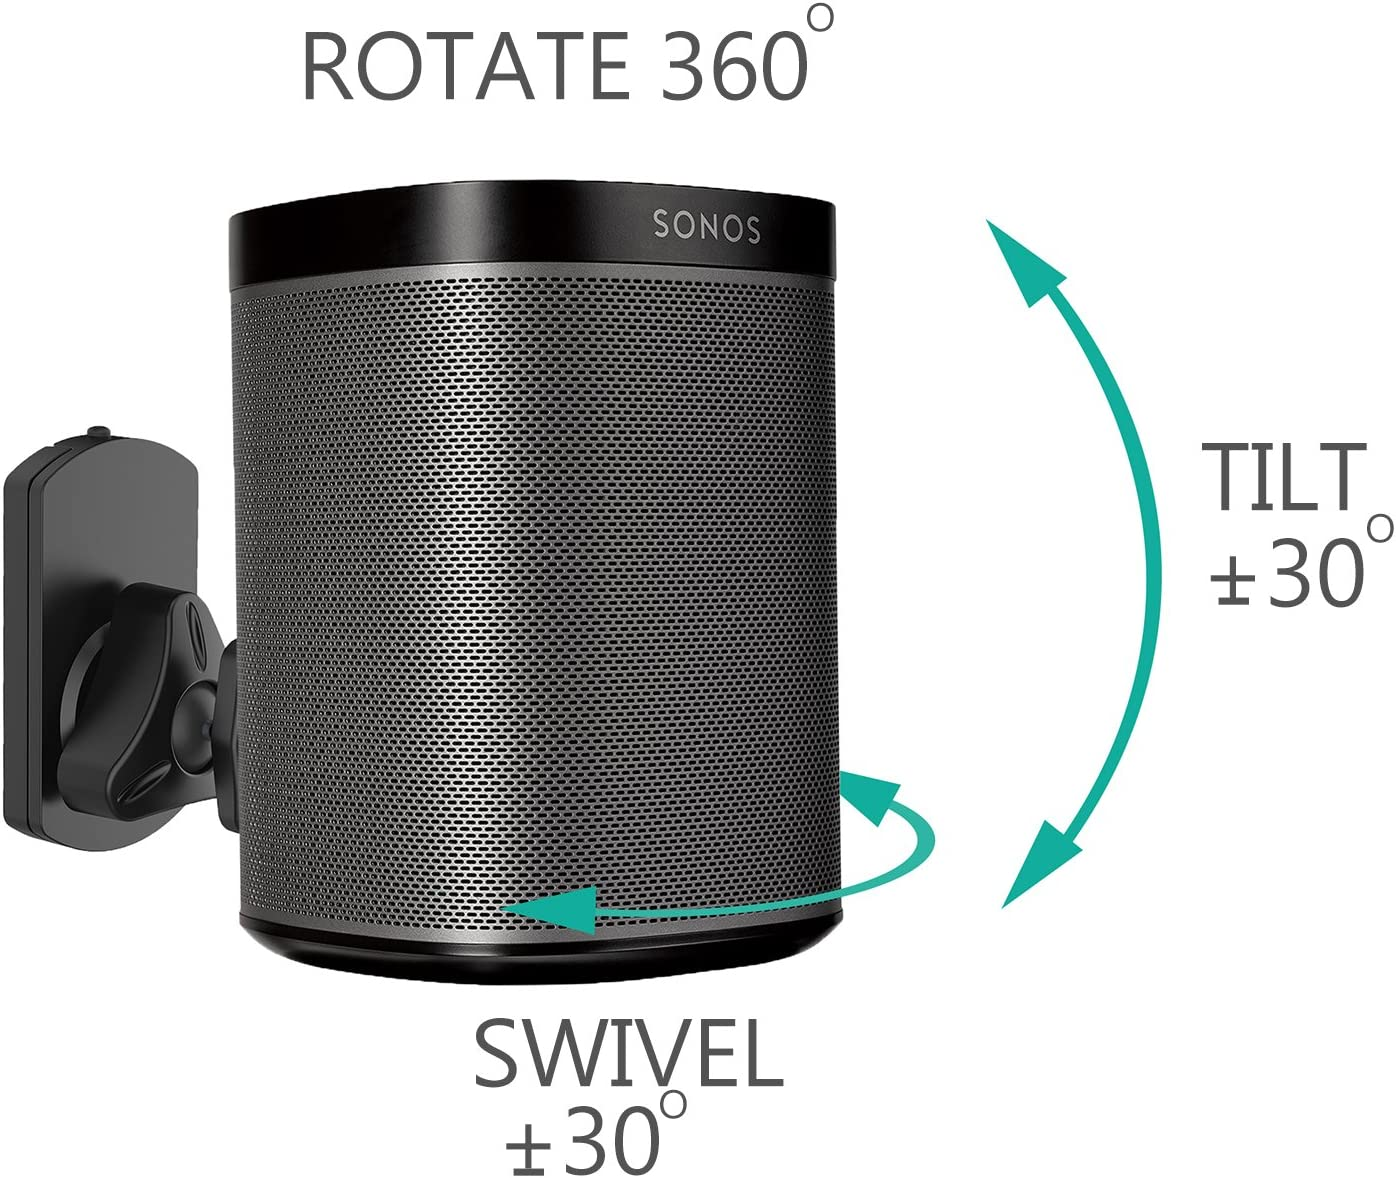 Electronics Hold up to 6.6lbs, Black SWM003 WALI SONOS Speaker ...